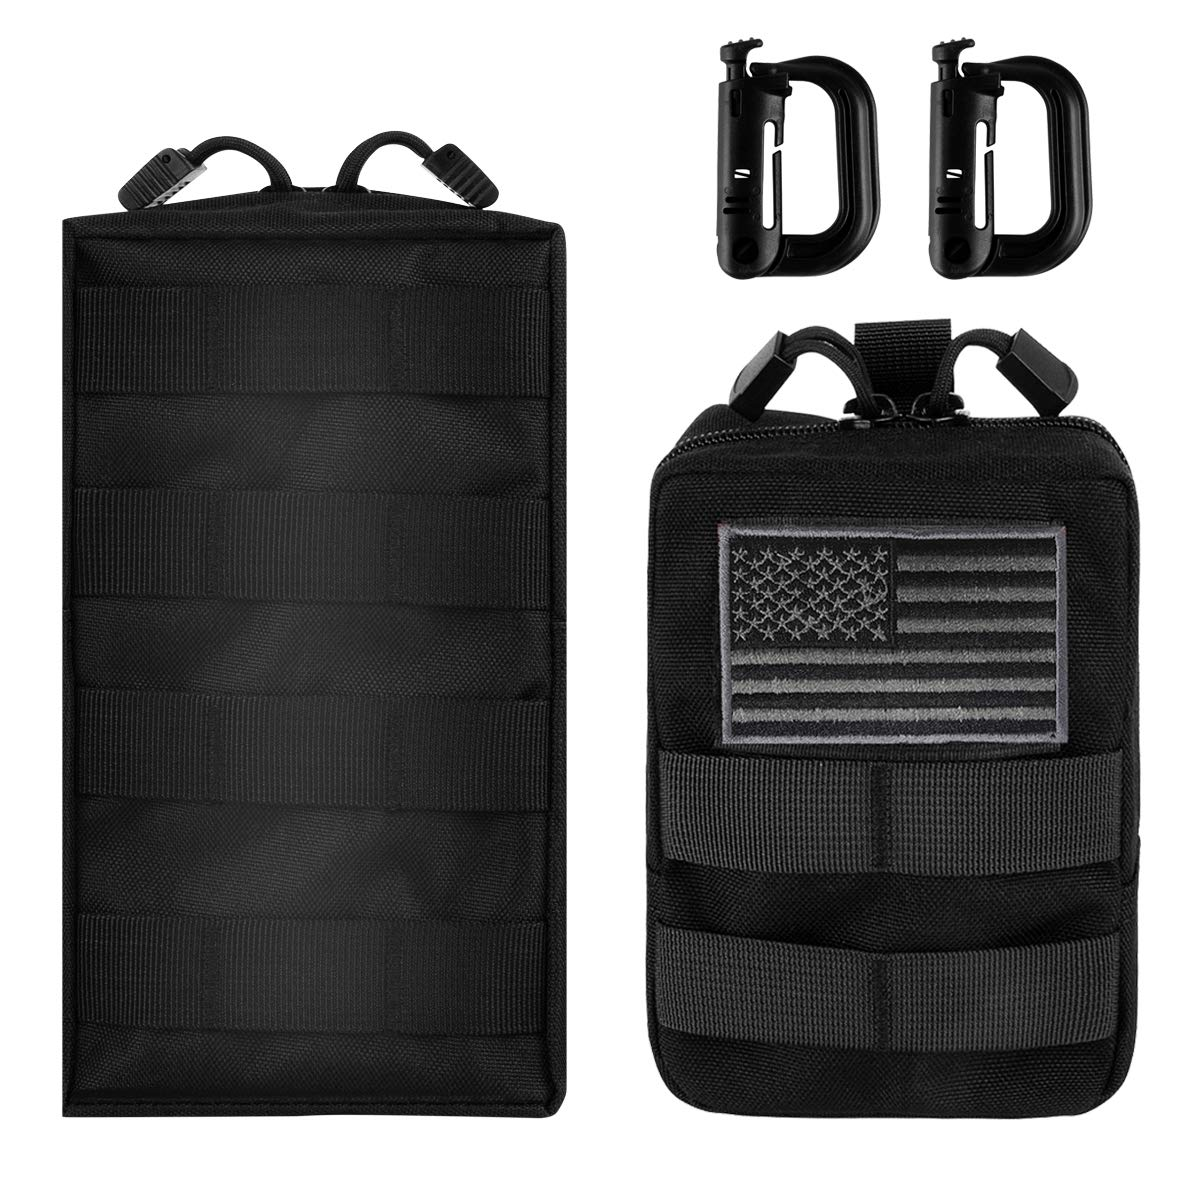 IronSeals MOLLE Pouch Multi-Purpose Tactical Compact Pack Water-Resistant Utility EDC Pouch with US Flag Patch